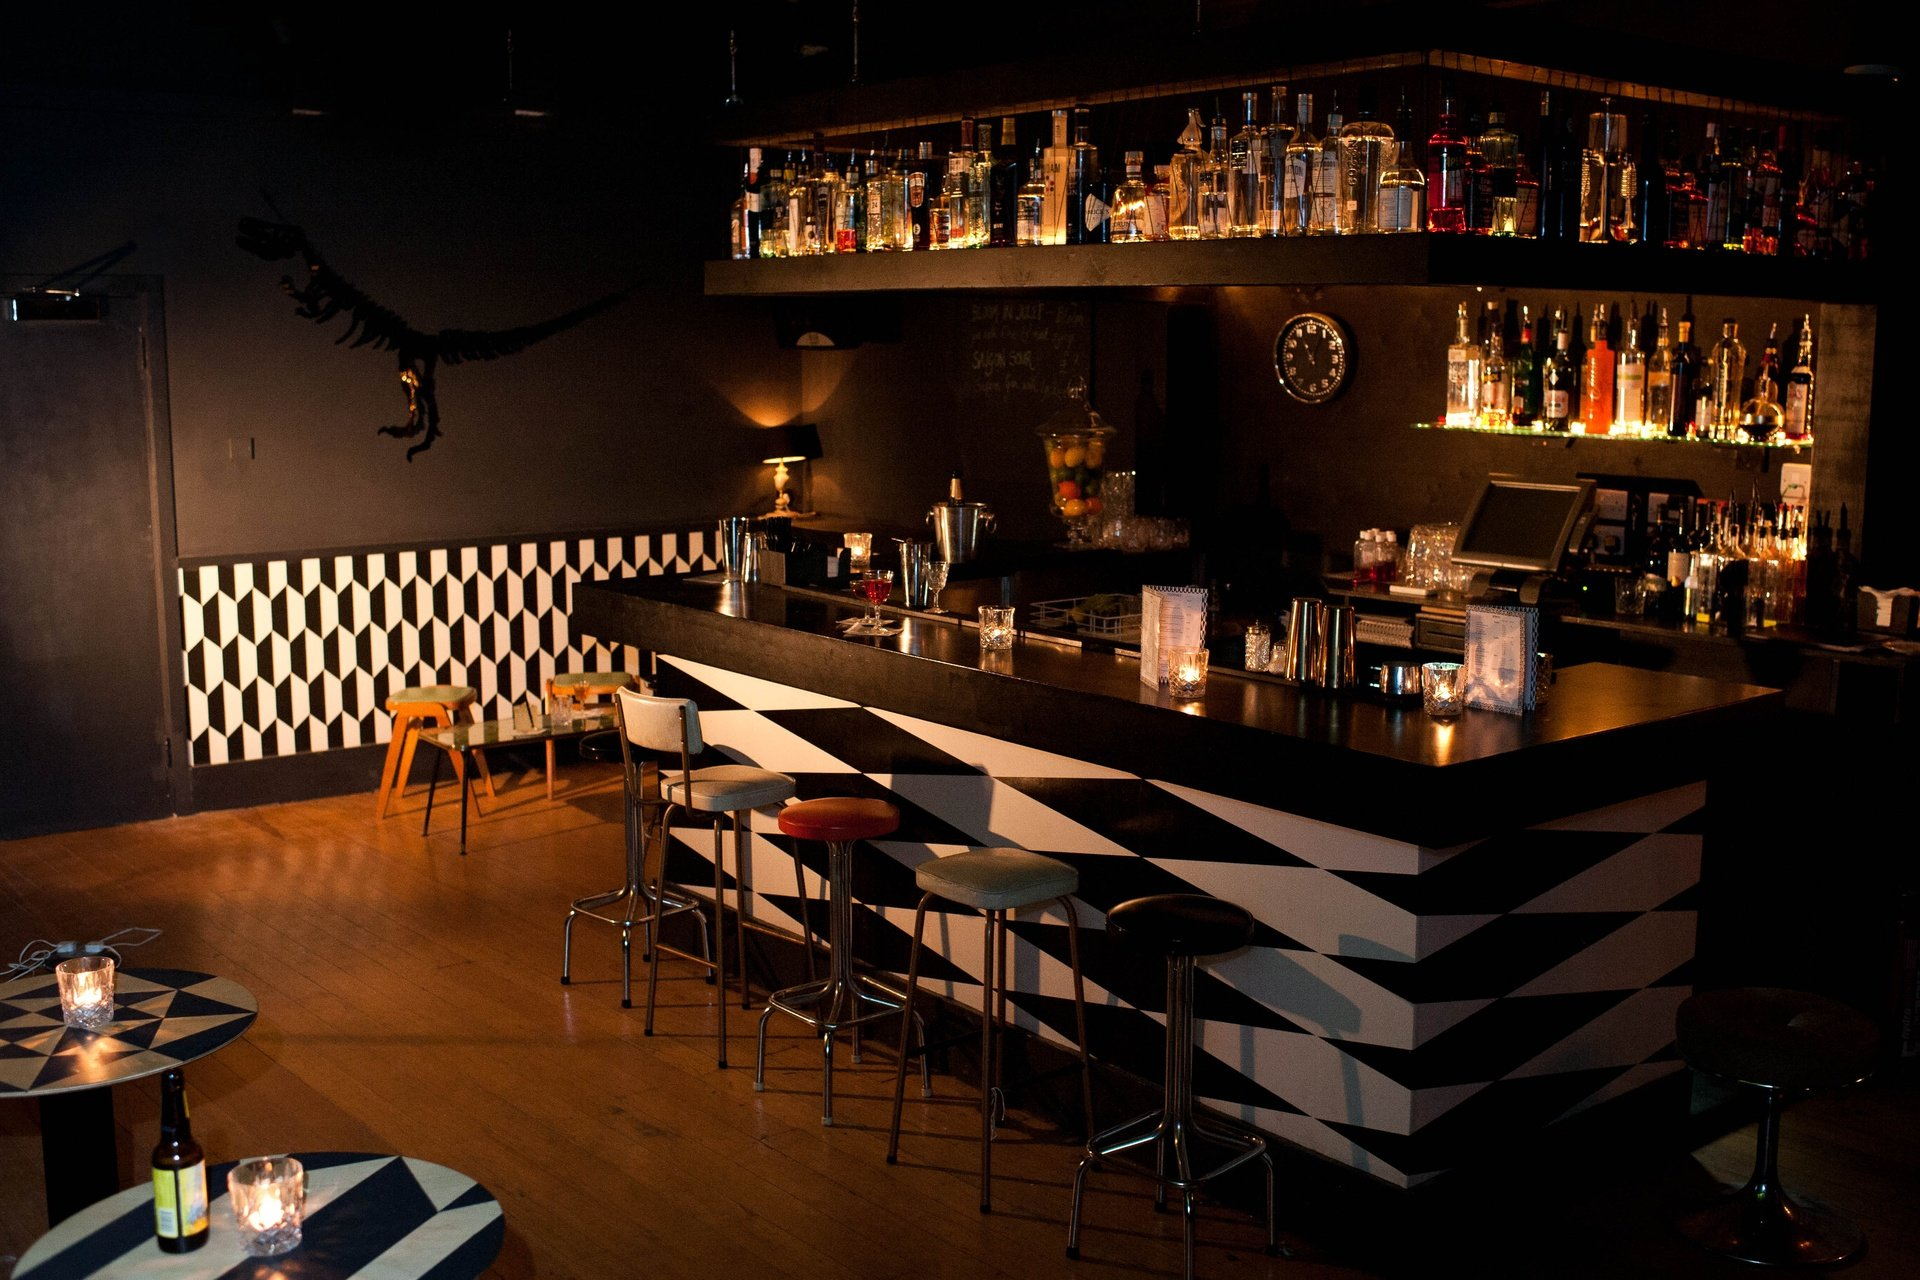 London corporate event venues Bar Drink Shop & Do - Downstairs Bar image 0